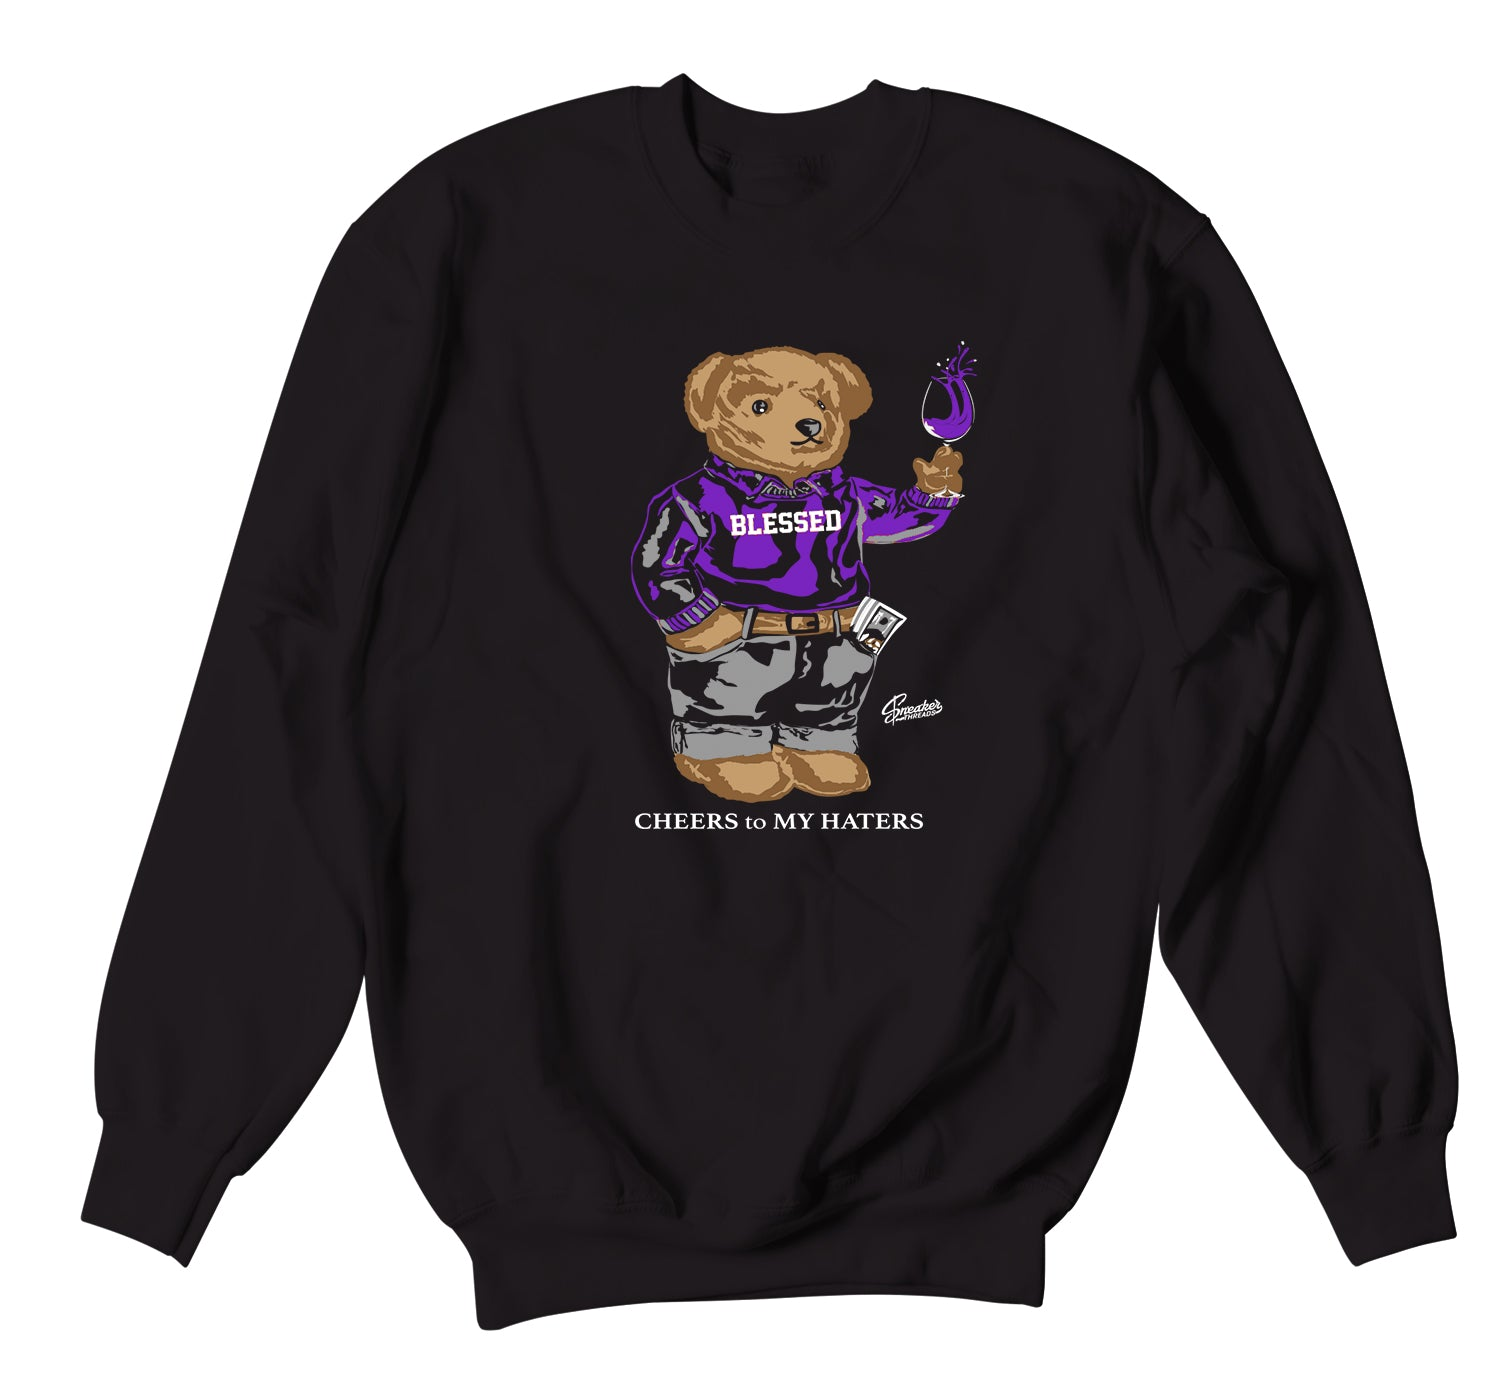 Crewneck sweater collection matching the Jordan 1 court purple sneaker collection